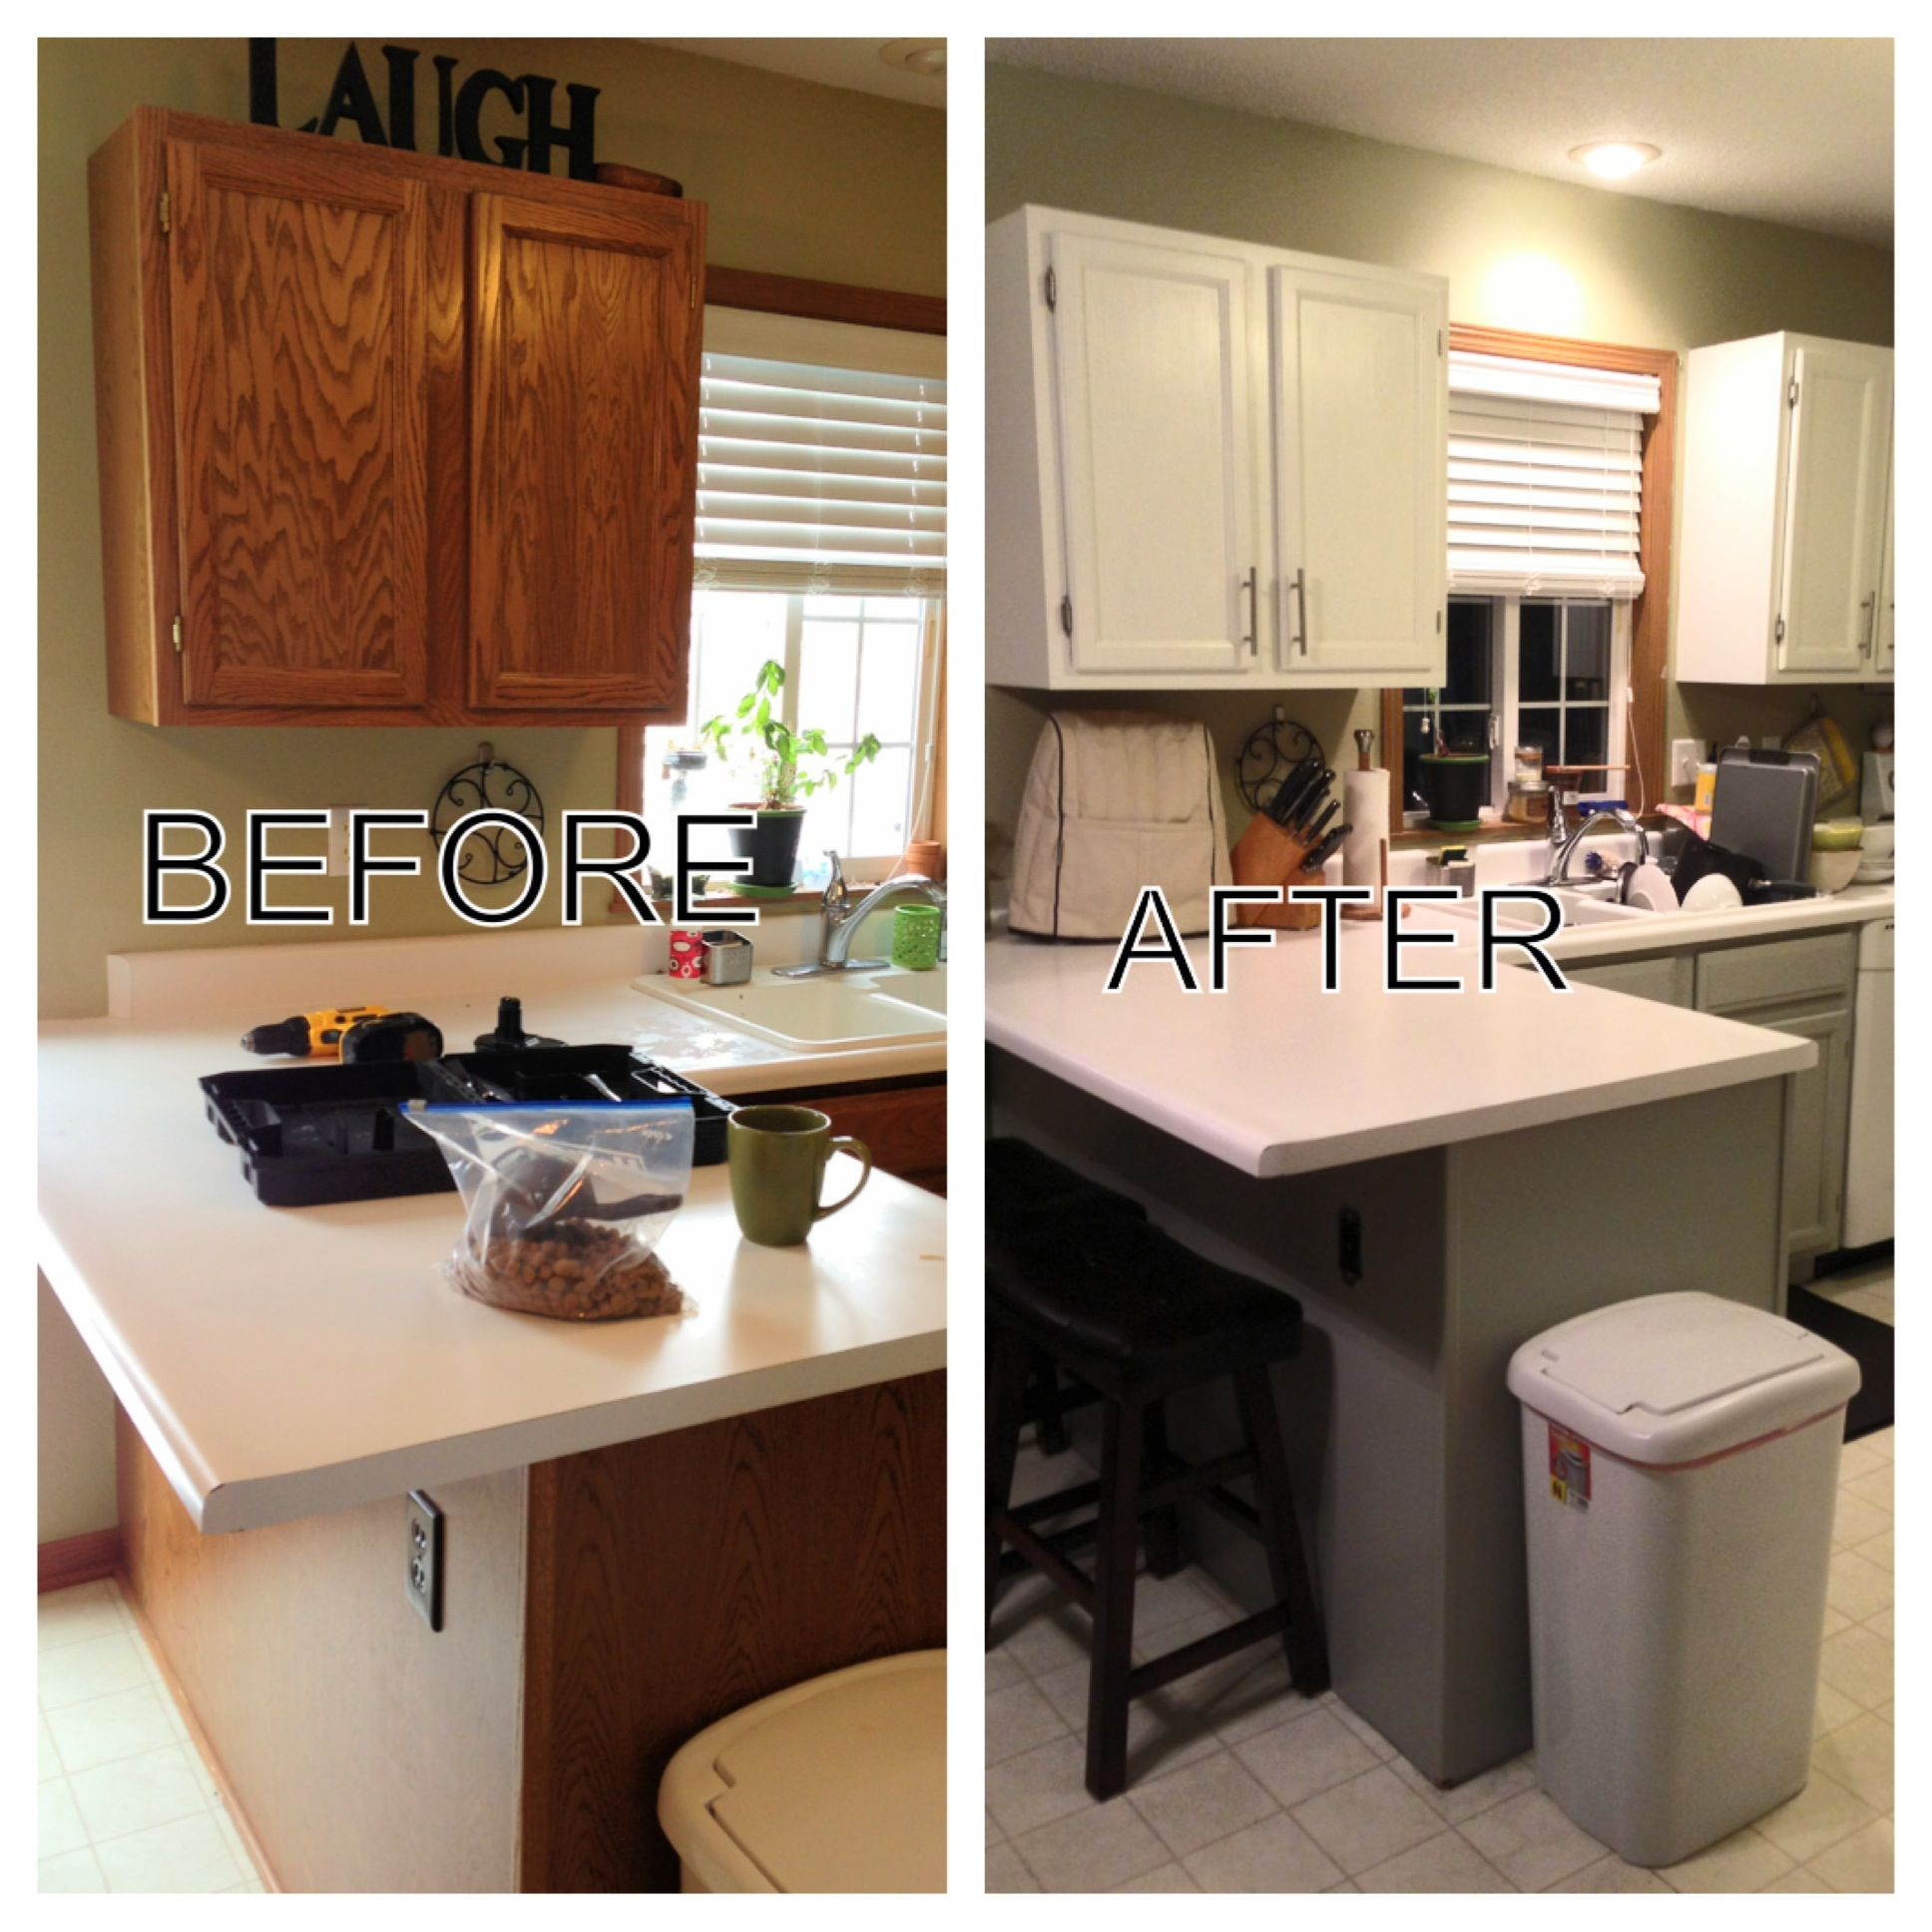 Used White Kitchen Cabinets: My Kitchen Reveal! We Used To Have Dated Builder Grade